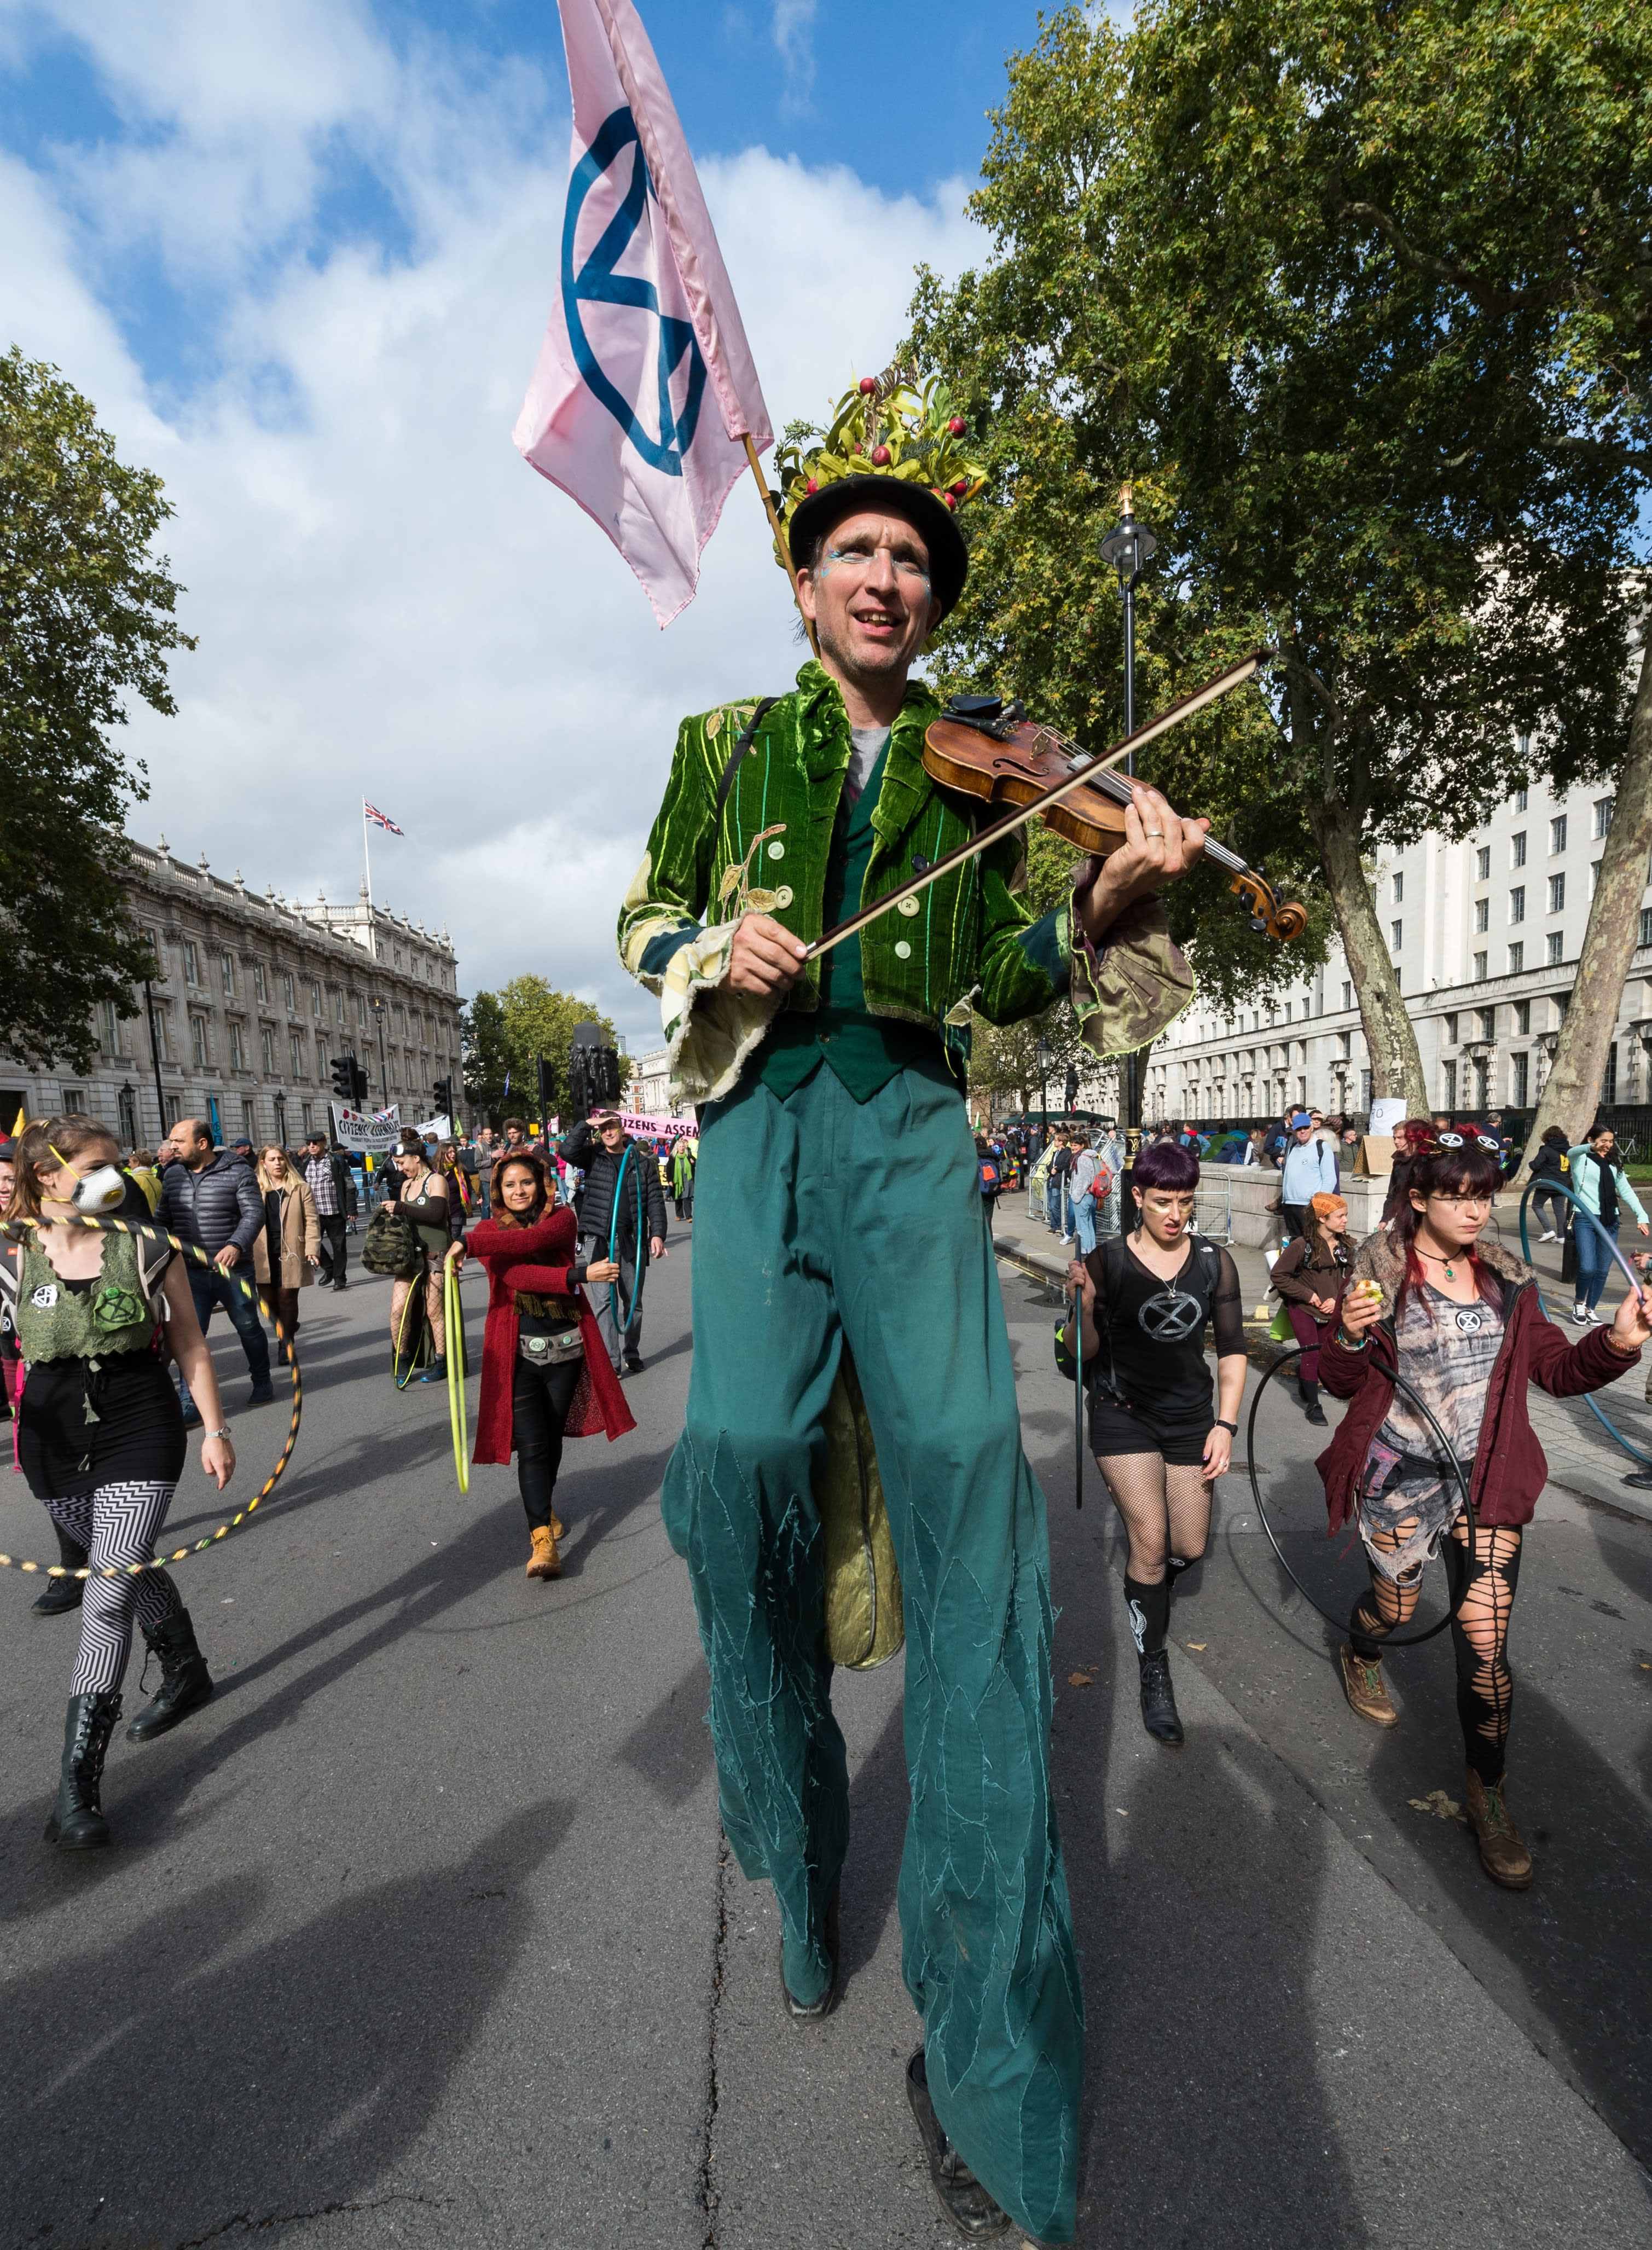 Environmental activist from Extinction Rebellion walks on stilts and plays the violin in London (Getty Images)